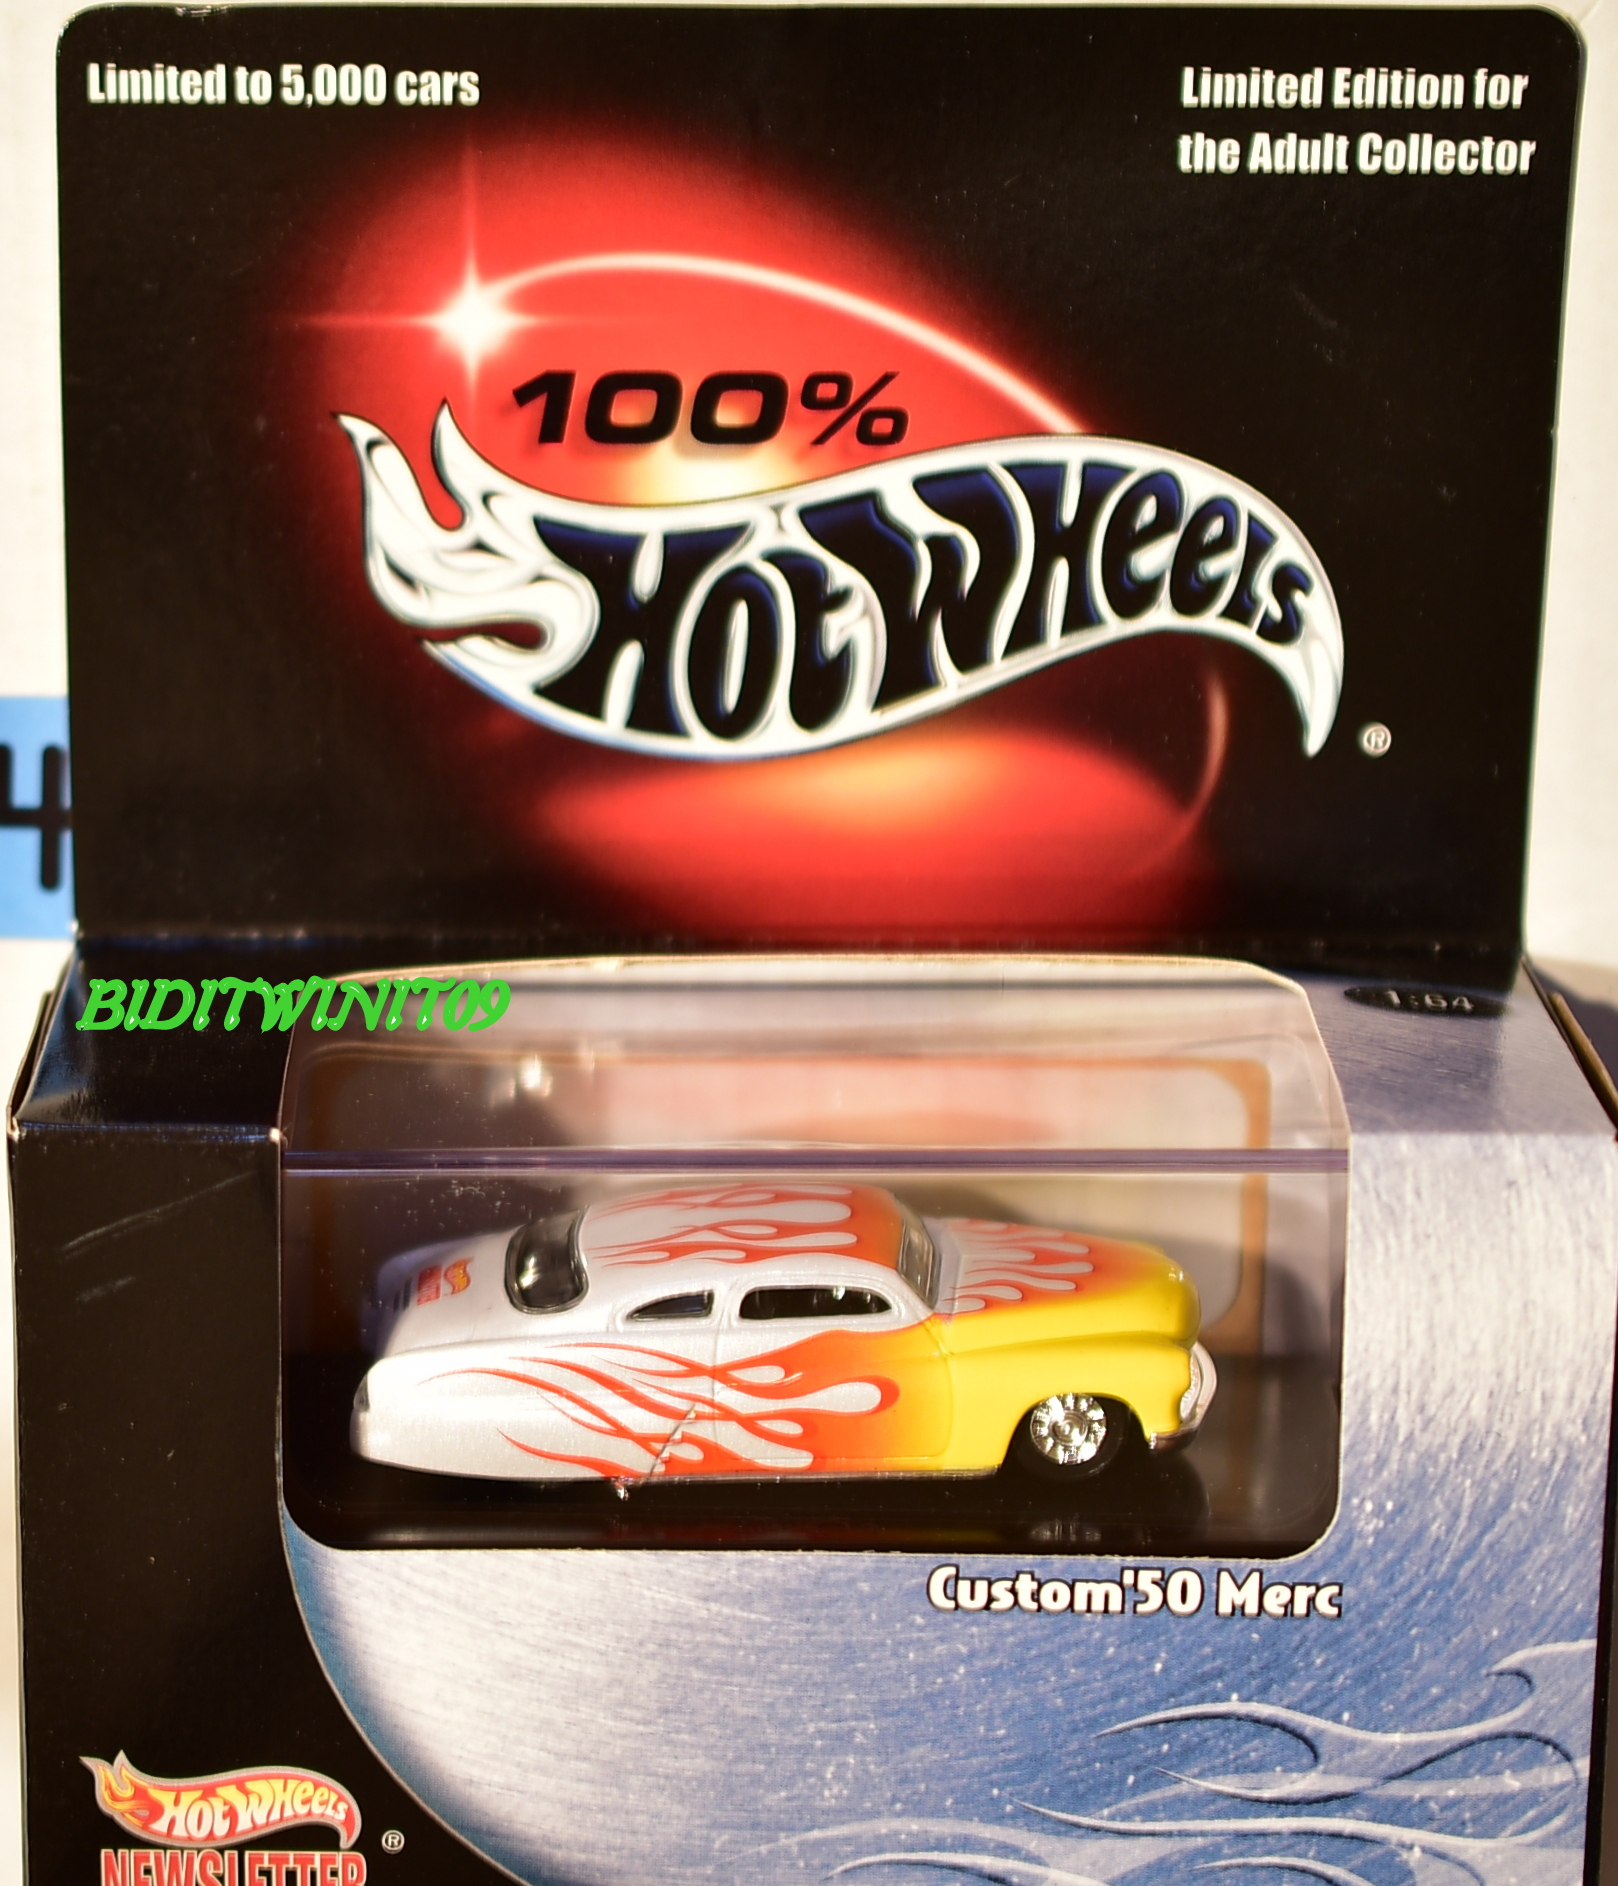 HOT WHEELS 100% BLACK BOX CUSTOM '50 MERC LIMITED EDITION E+